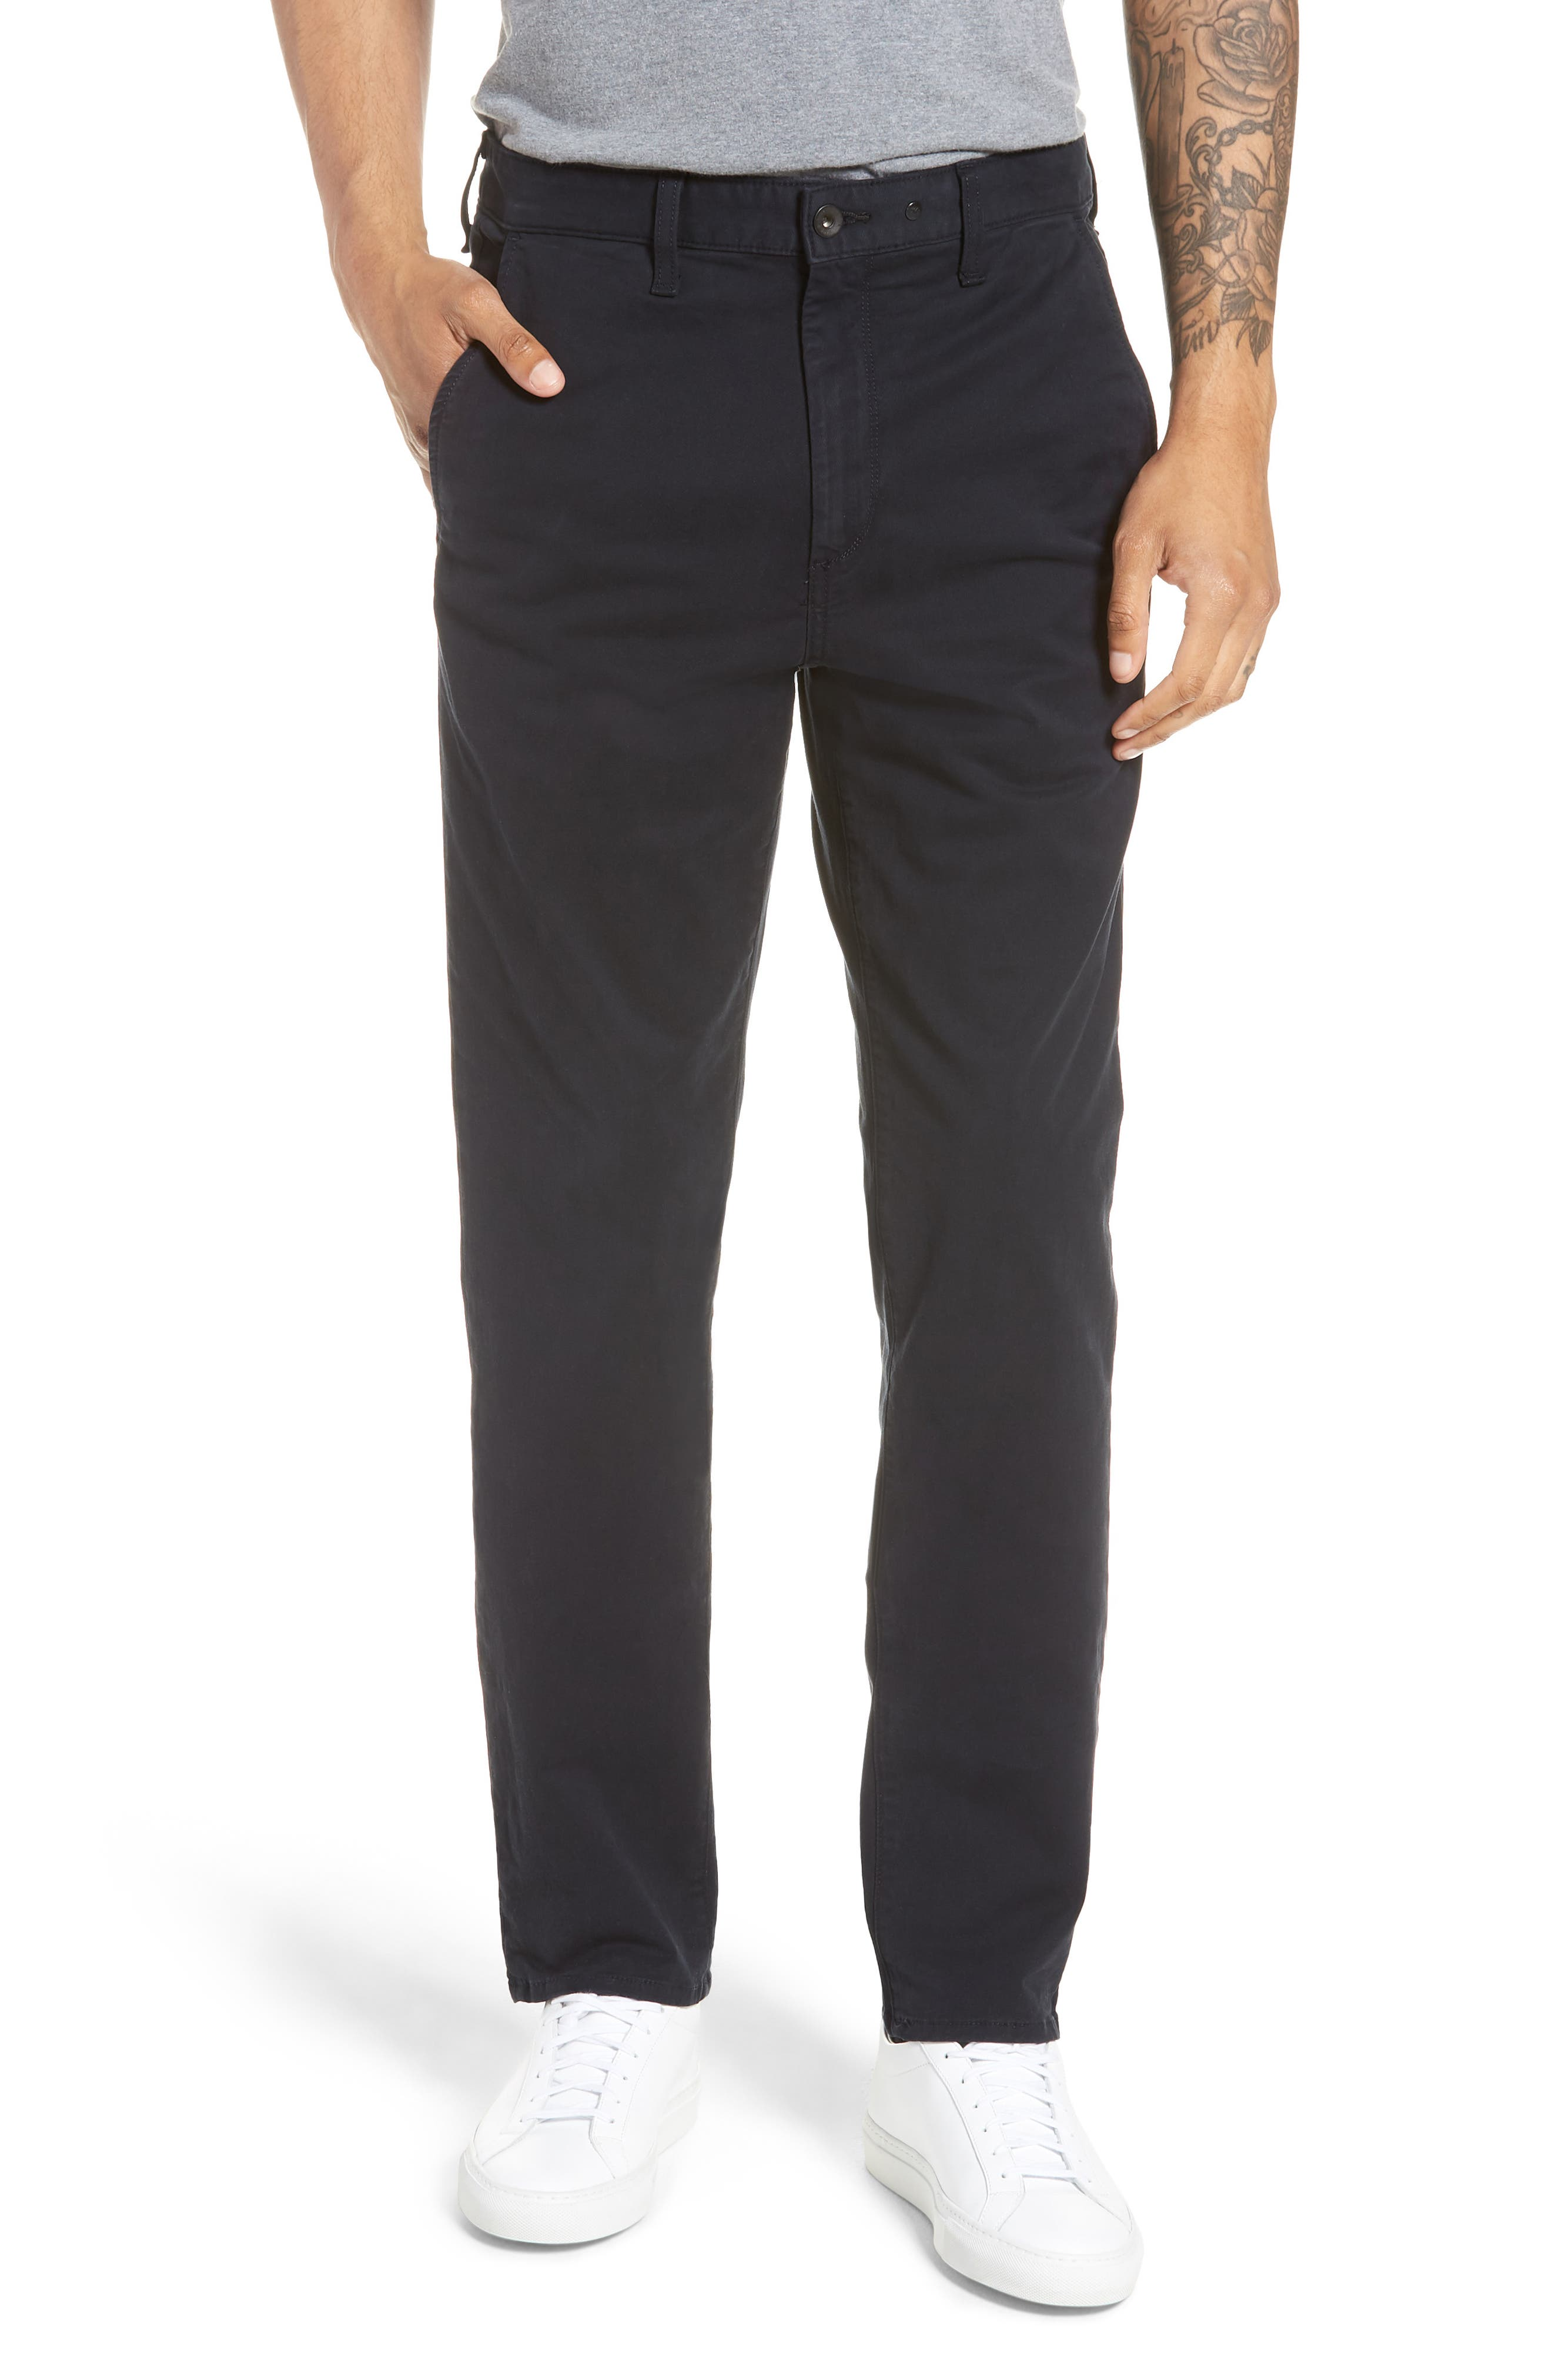 Fit 3 Classic Chino,                         Main,                         color, NAVY